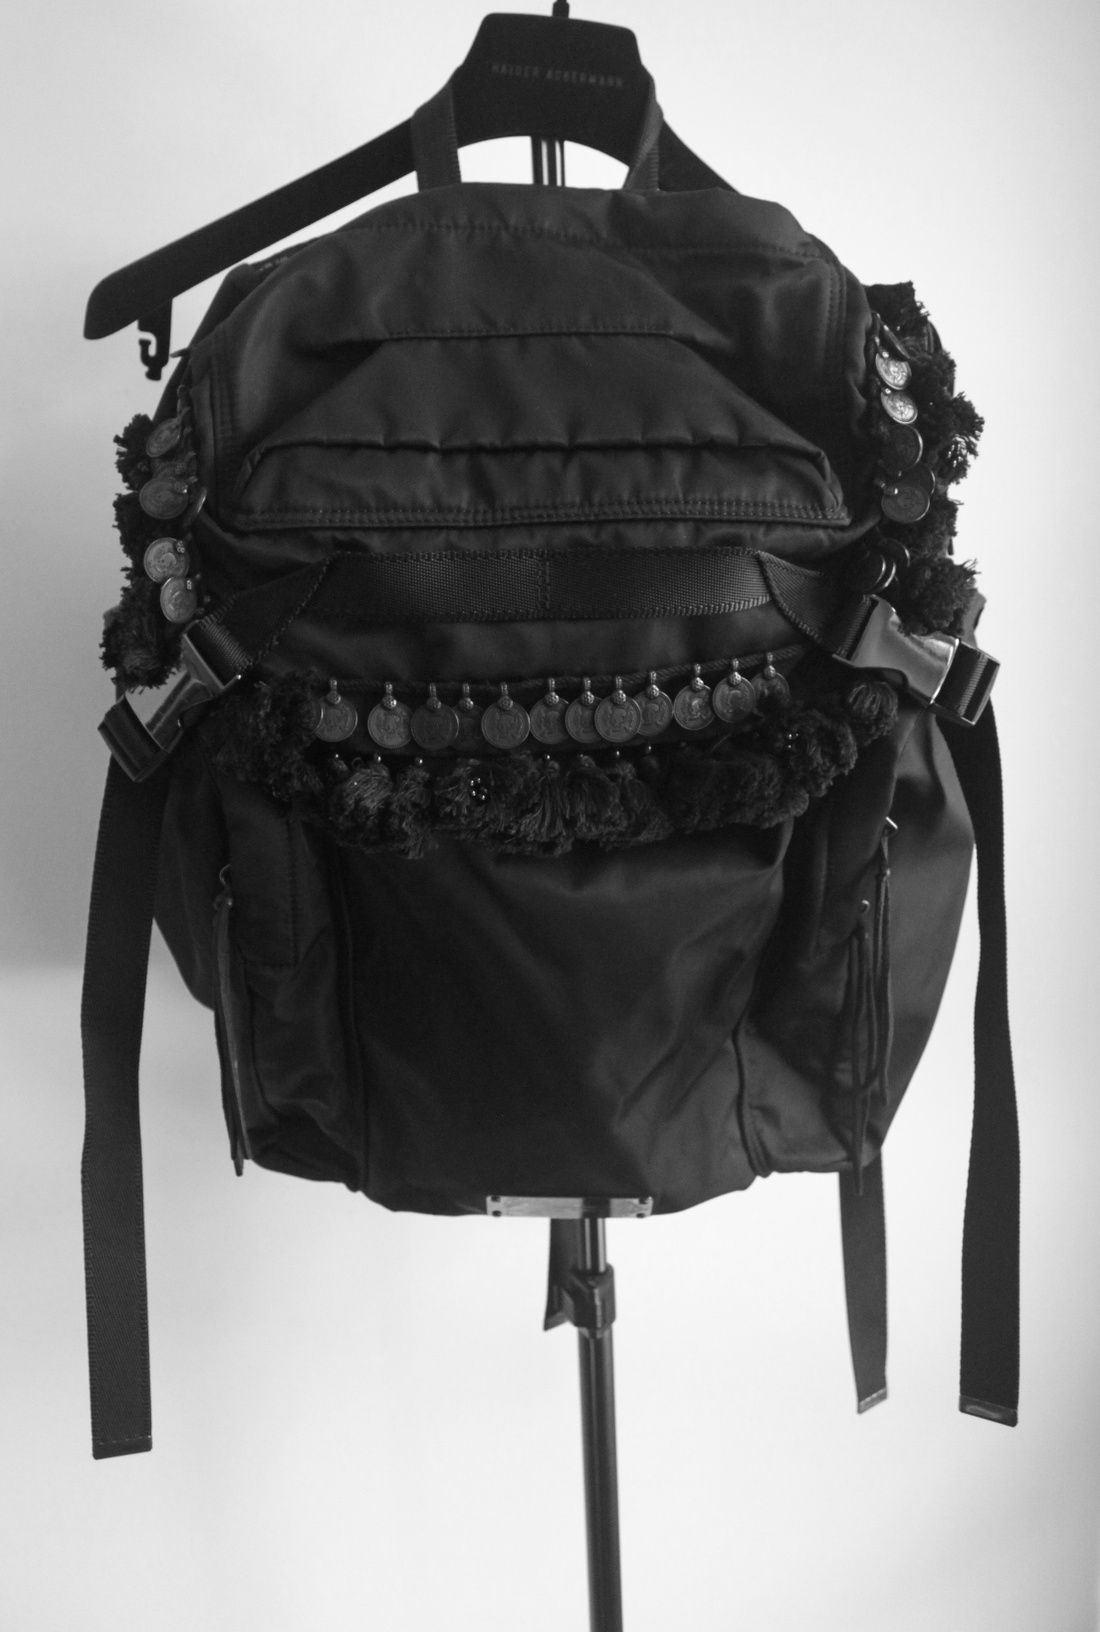 Undercover Ethnic Backpack Size One Size  700 - Grailed  202599ca73439